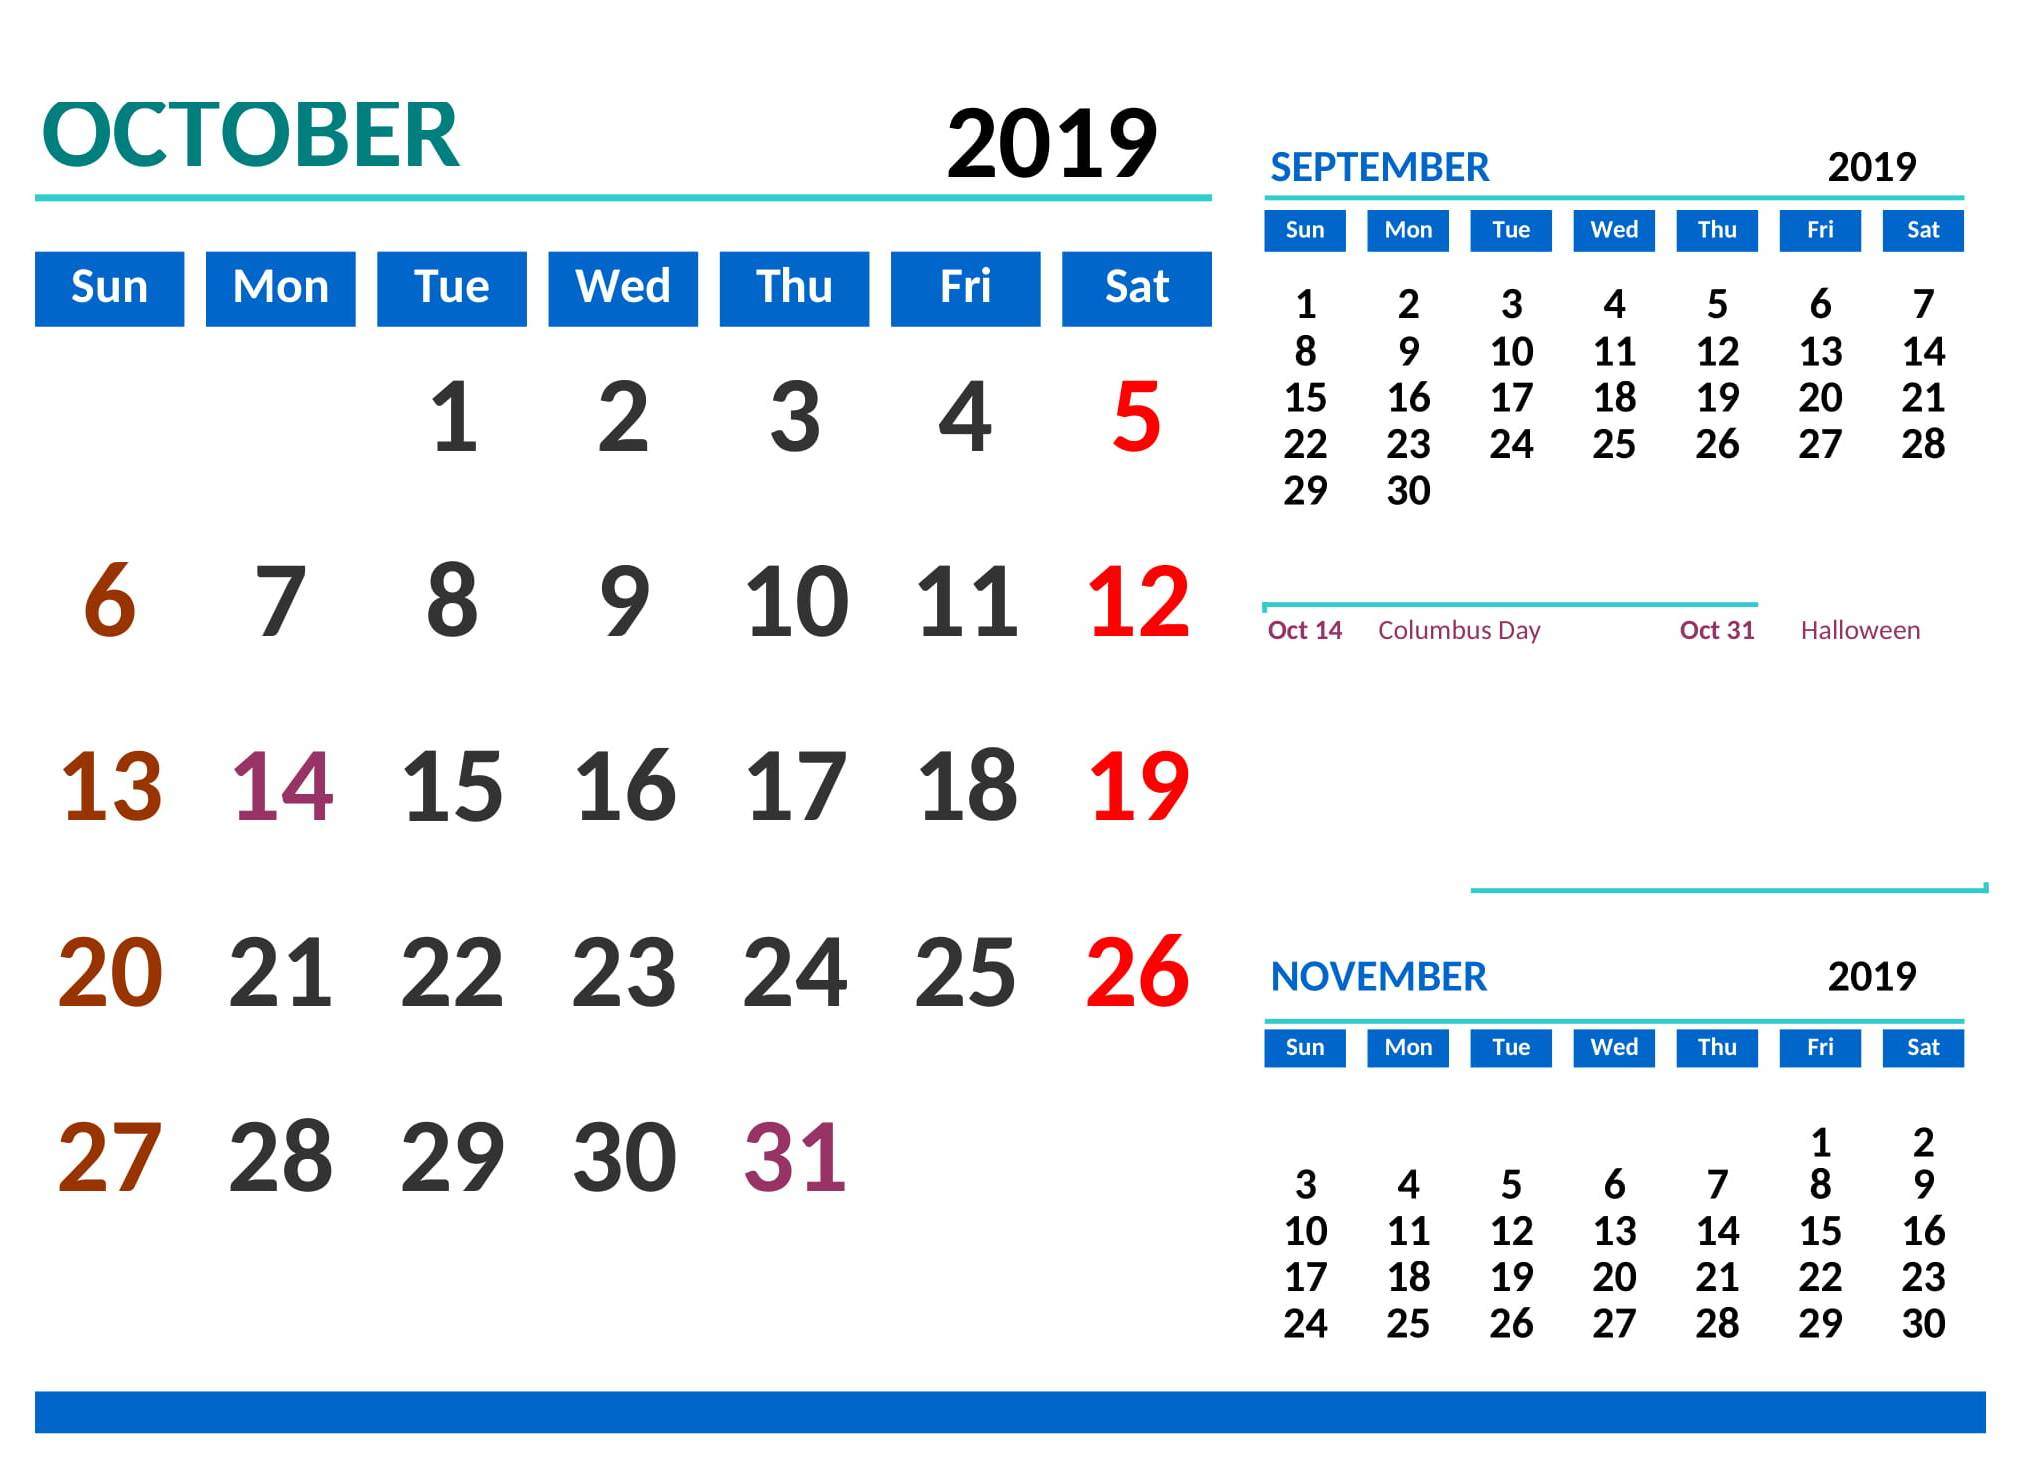 October 2019 Calendar with Holidays List